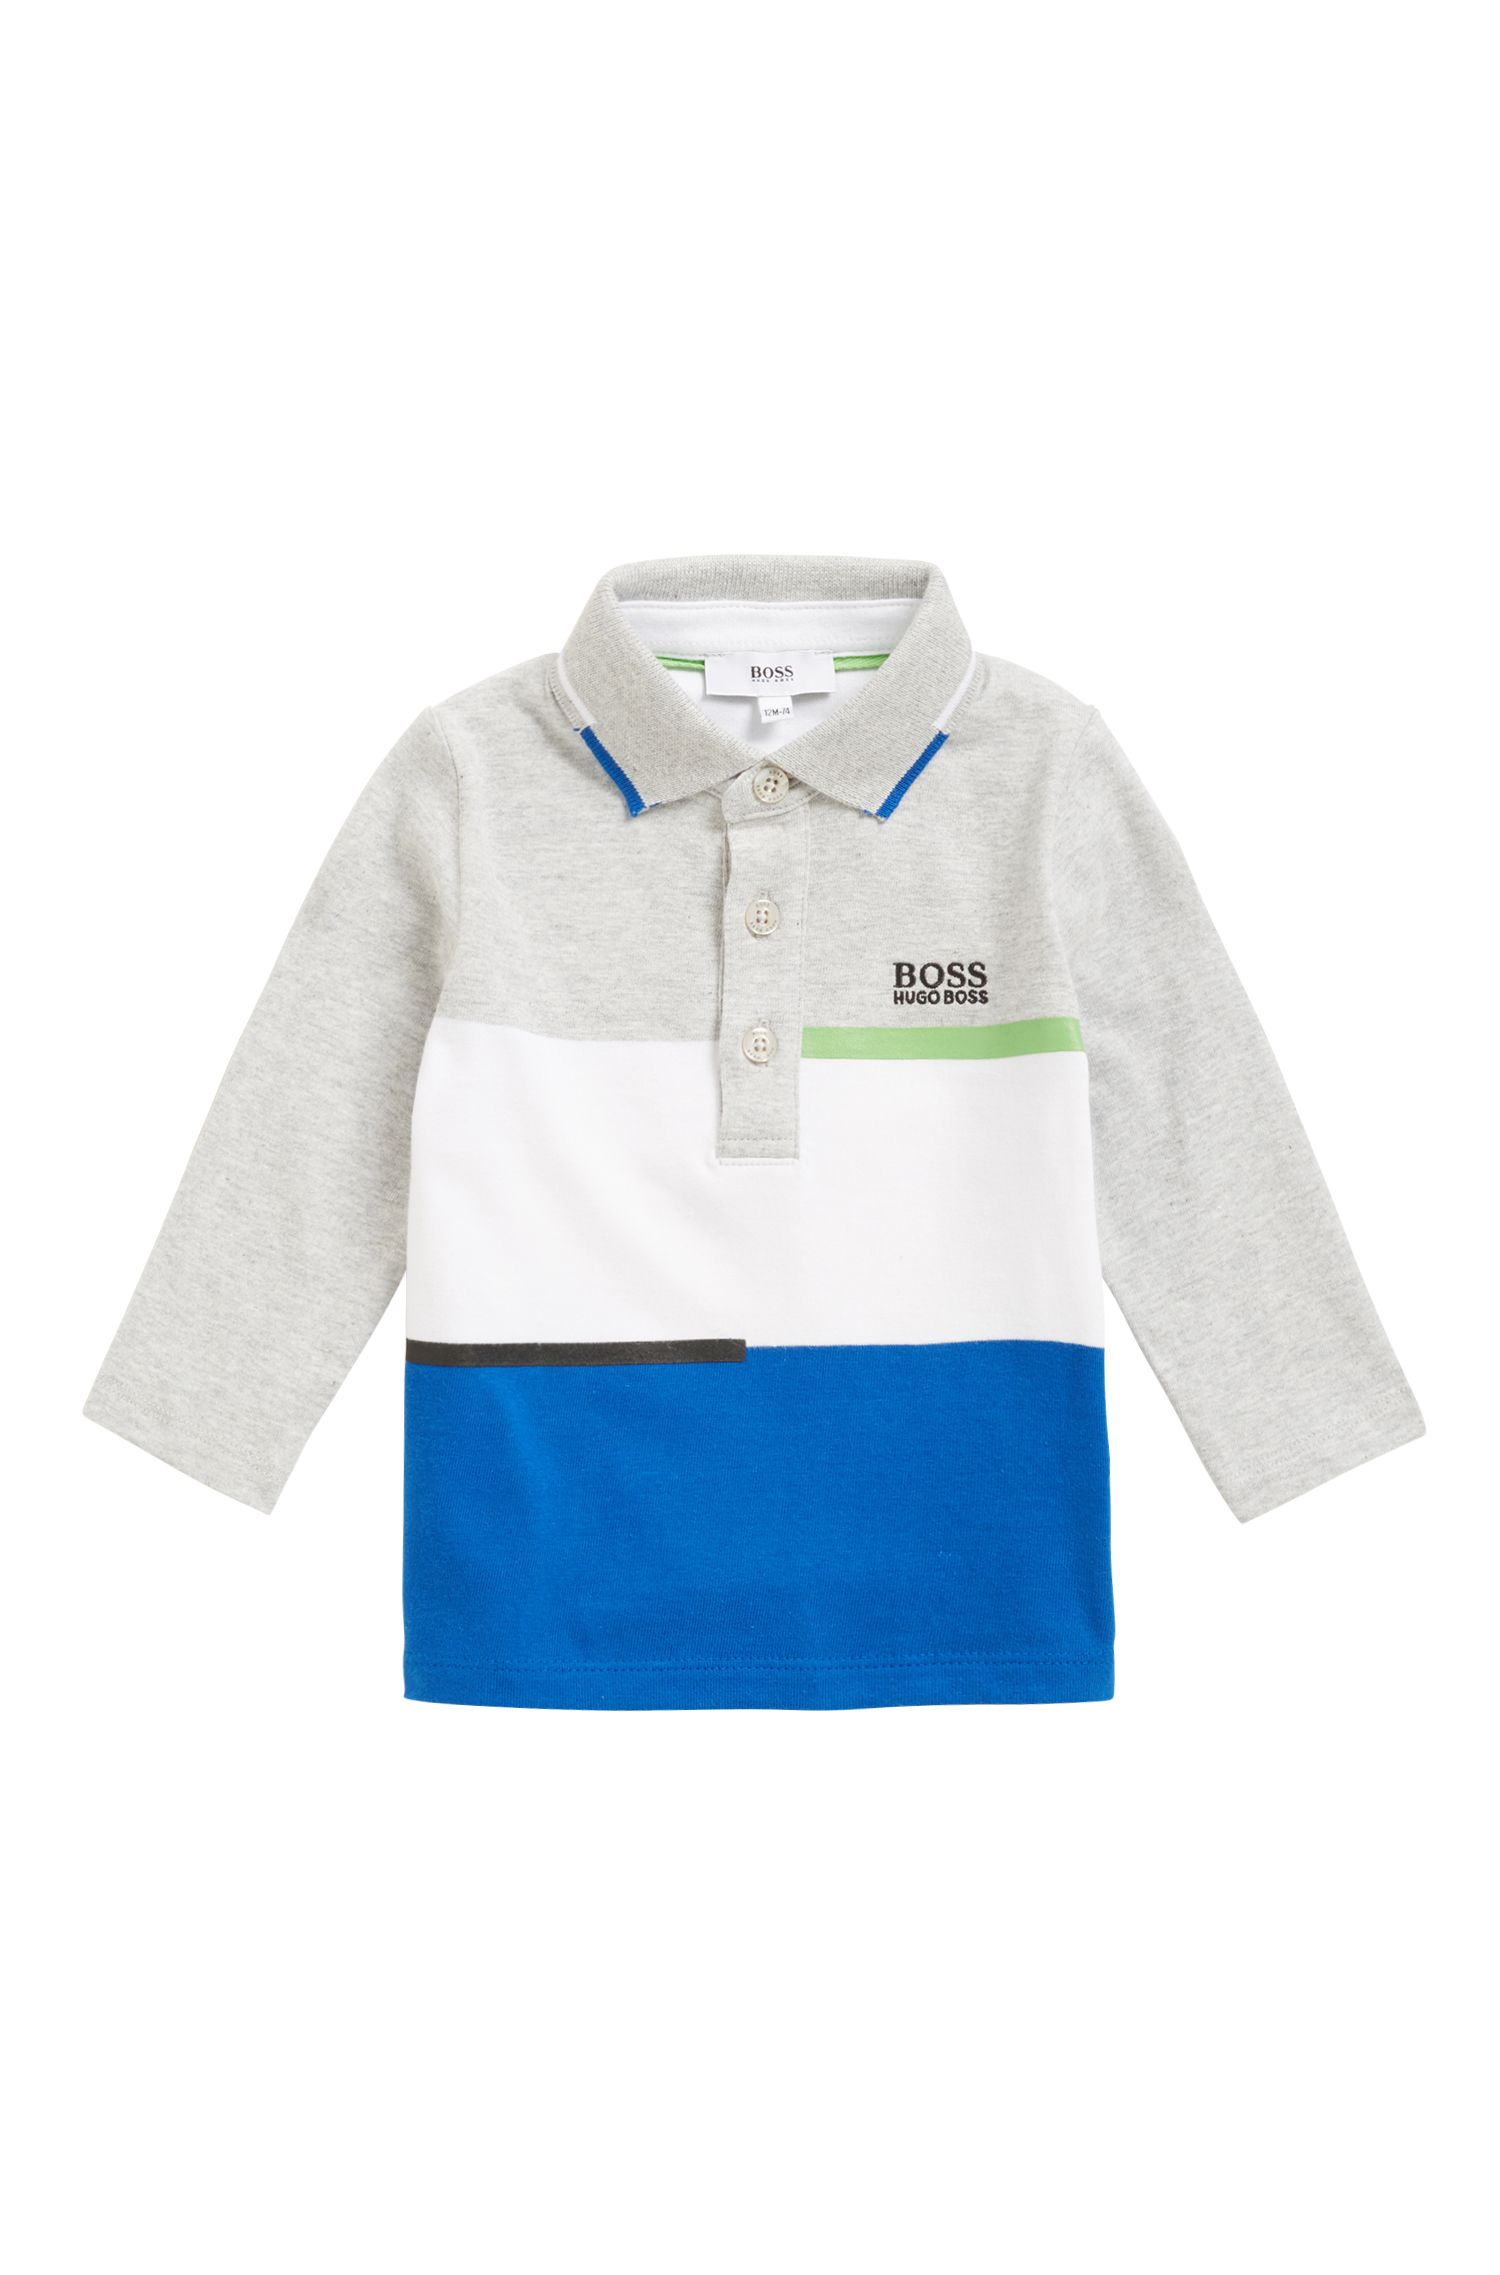 Kids-Longsleeve-Poloshirt aus Baumwoll-Jersey in Colour-Block-Optik, Hellgrau